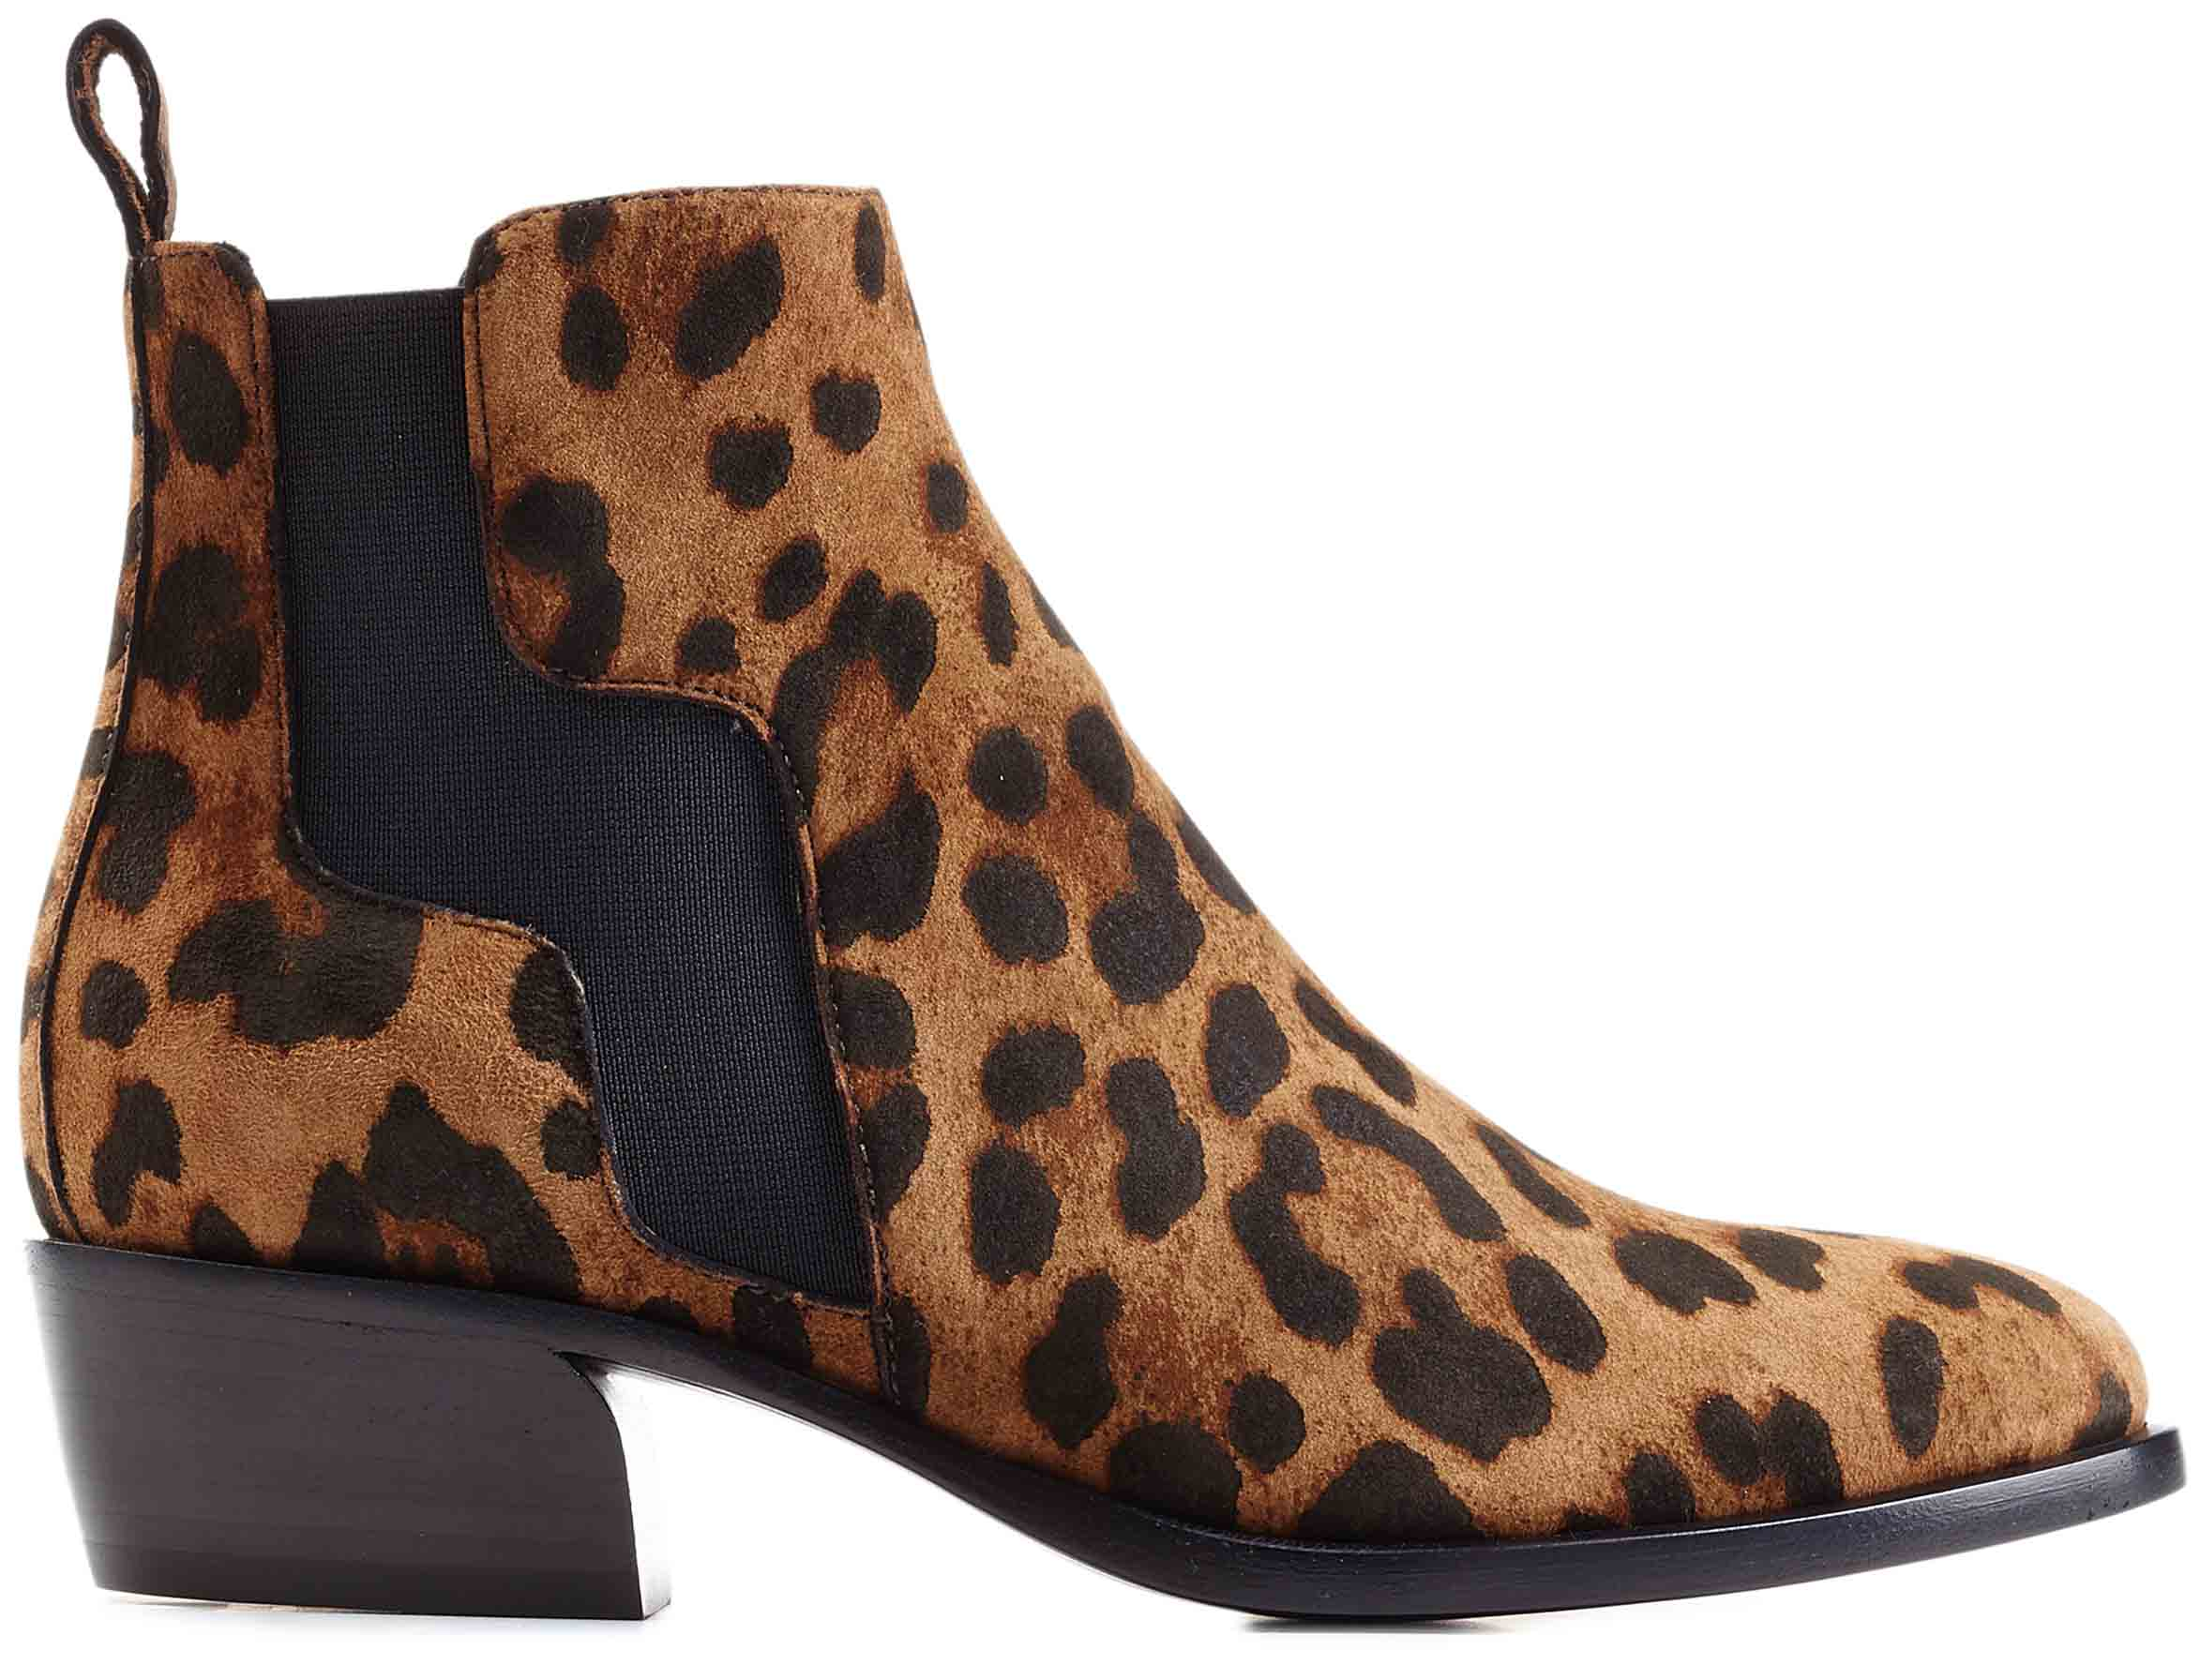 R STYLEBOPcom PIERRE HARDY  Animal Printed Suede Ankle Boots  AUD 1001